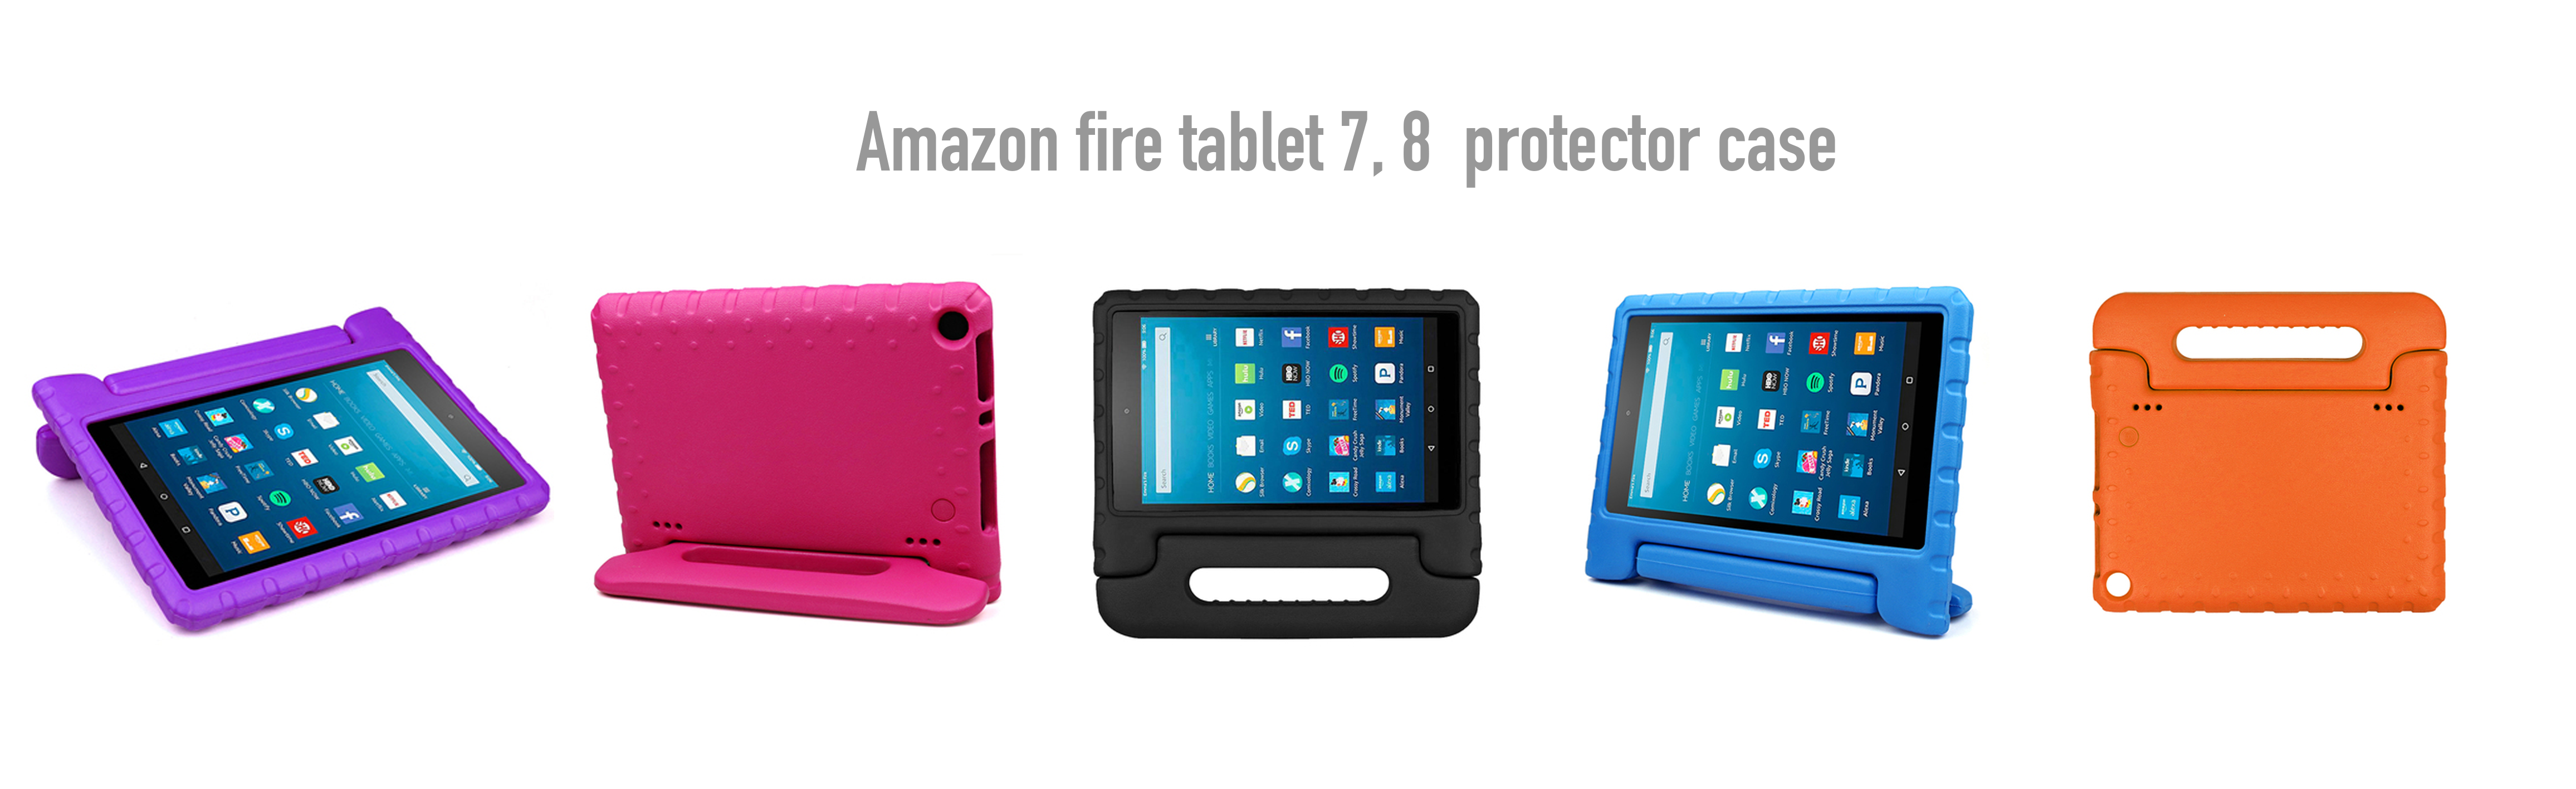 amazon fire tablets protector case